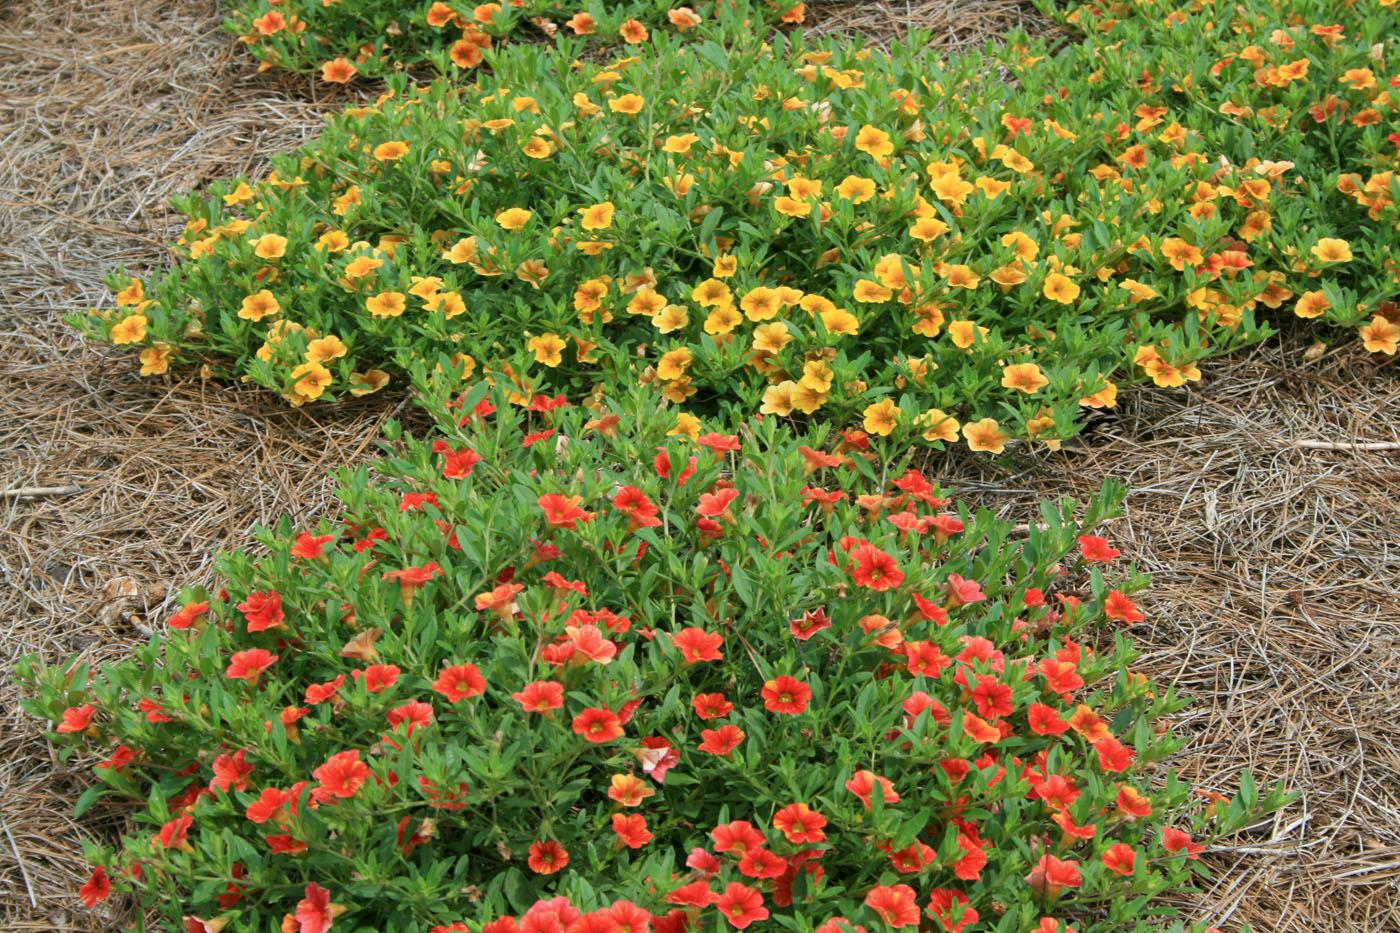 Million Bells CanCan Terra Cotta and Orange spread to fill in open spaces in the landscape.